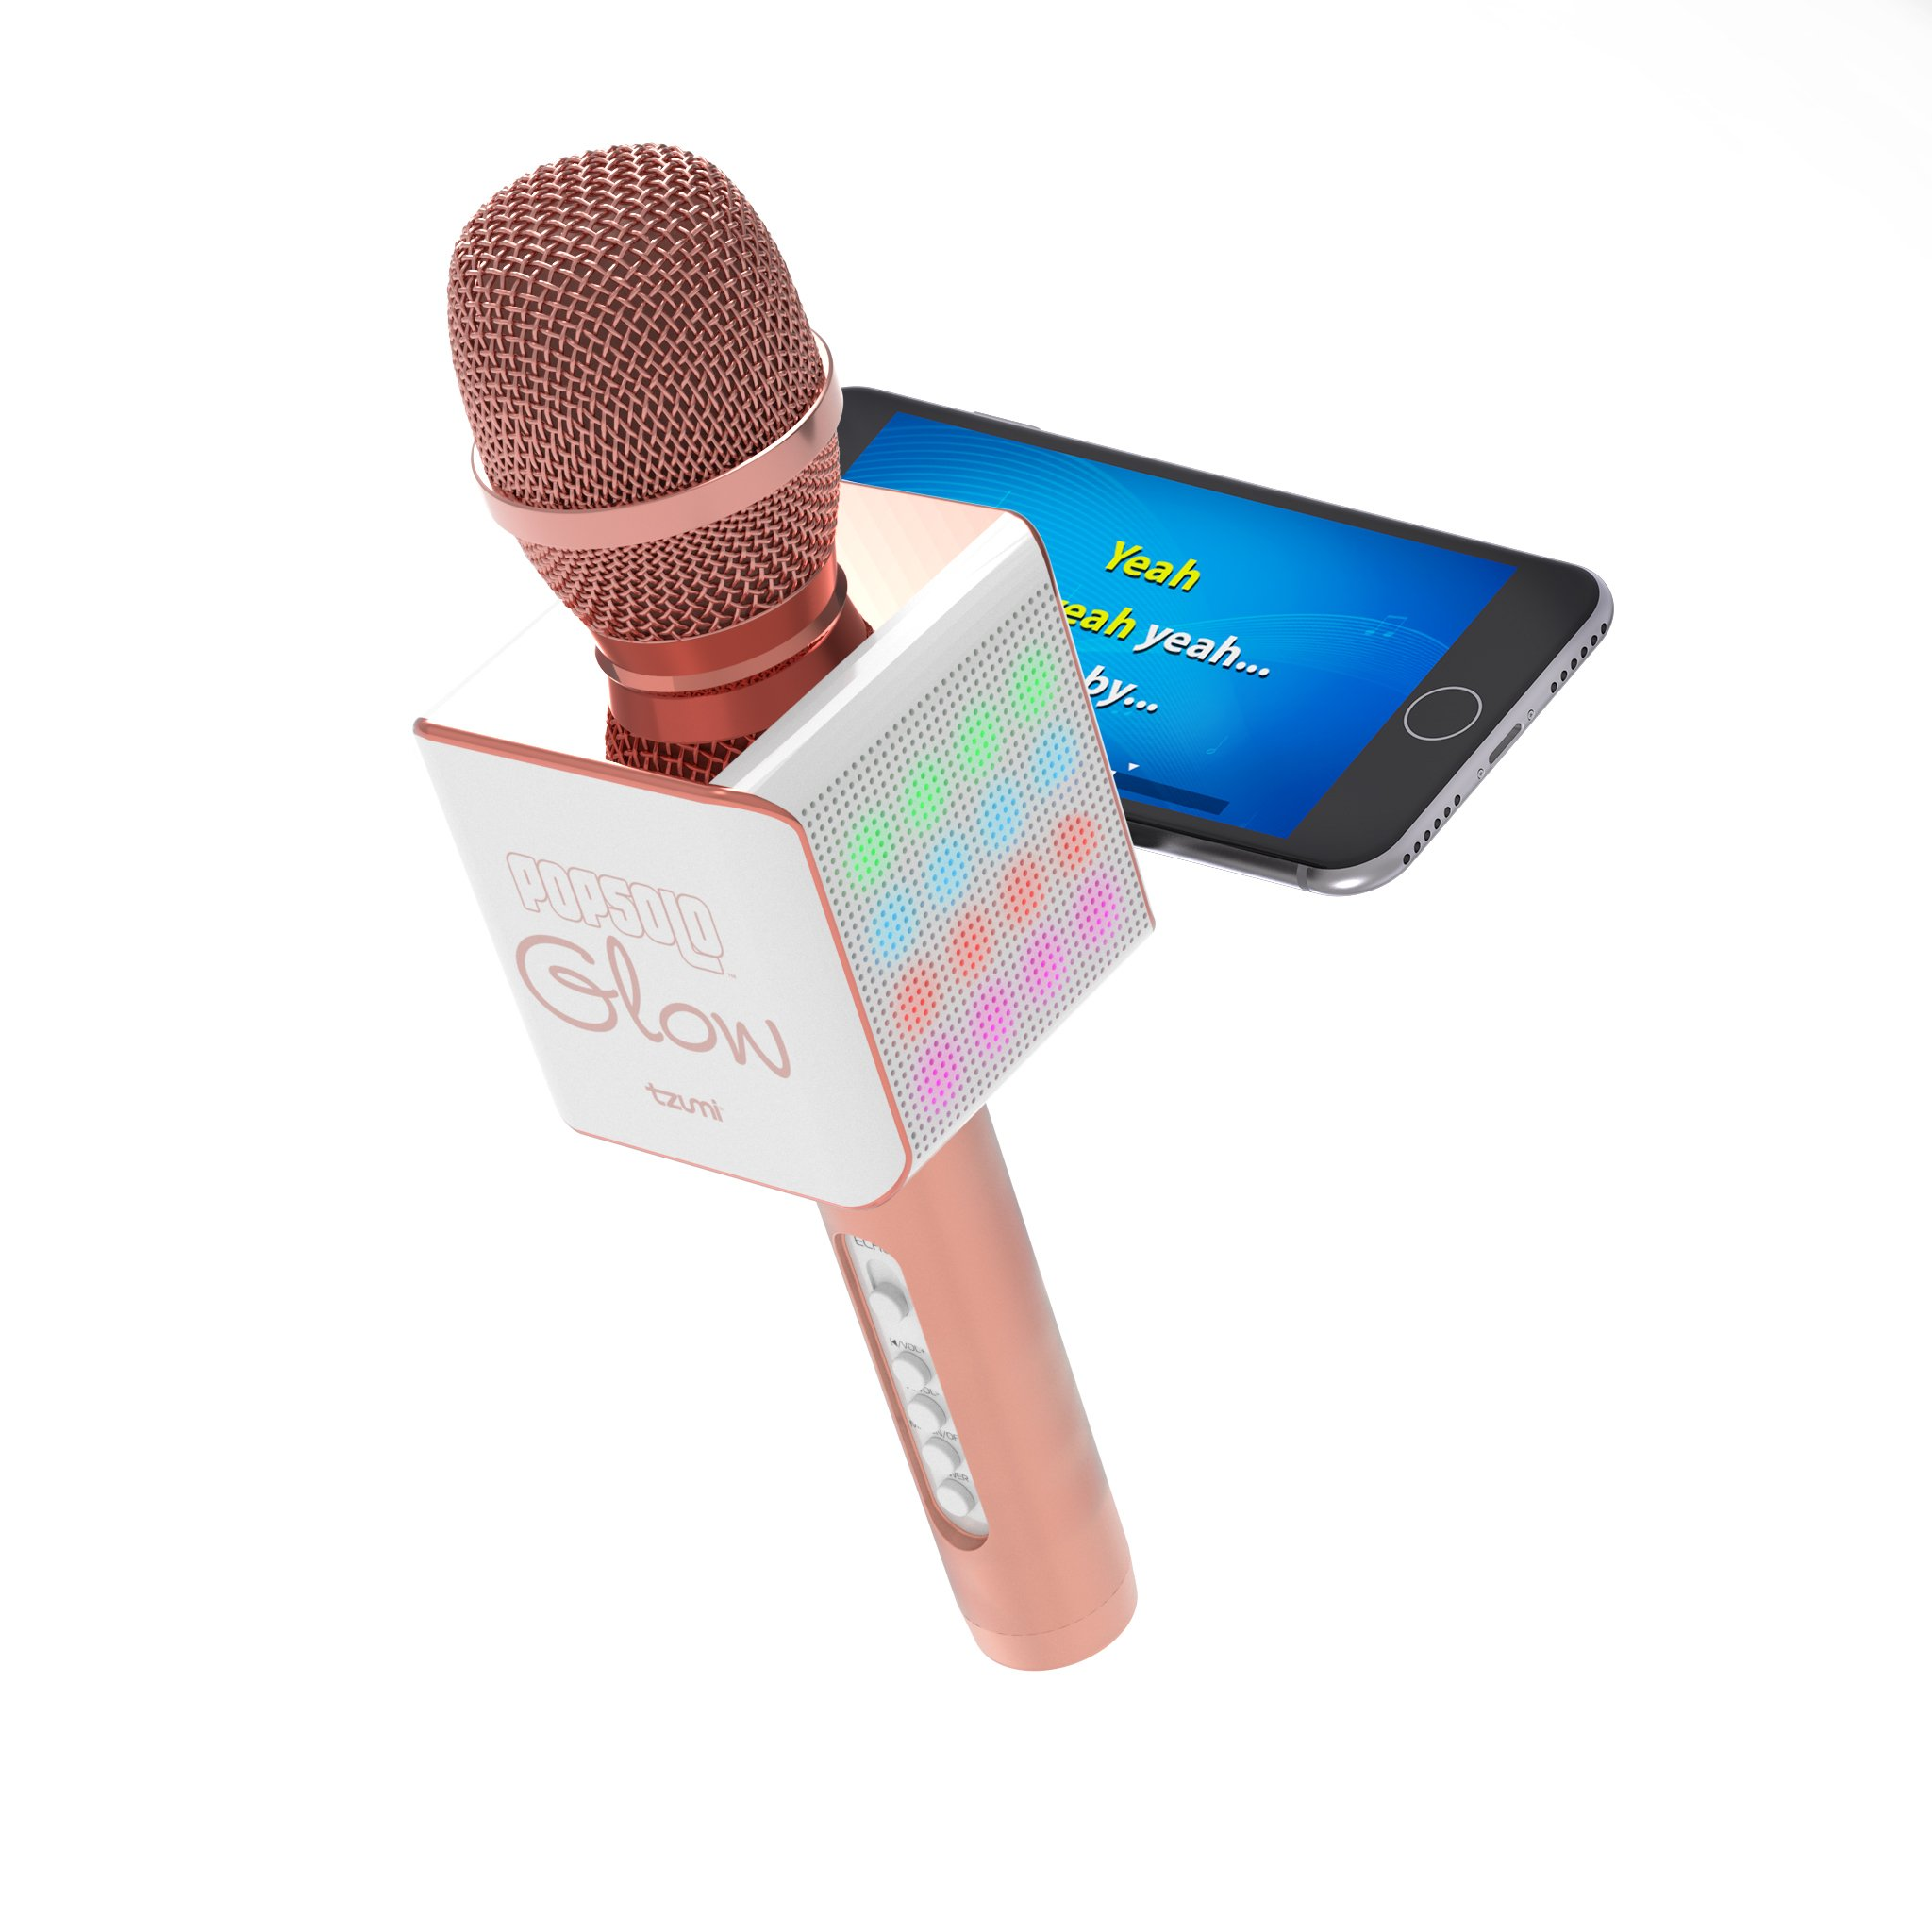 Tzumi PopSolo - Rechargeable Bluetooth Karaoke Microphone and Voice Mixer with Smartphone Holder - Great for All Ages (Rose Gold Glow)